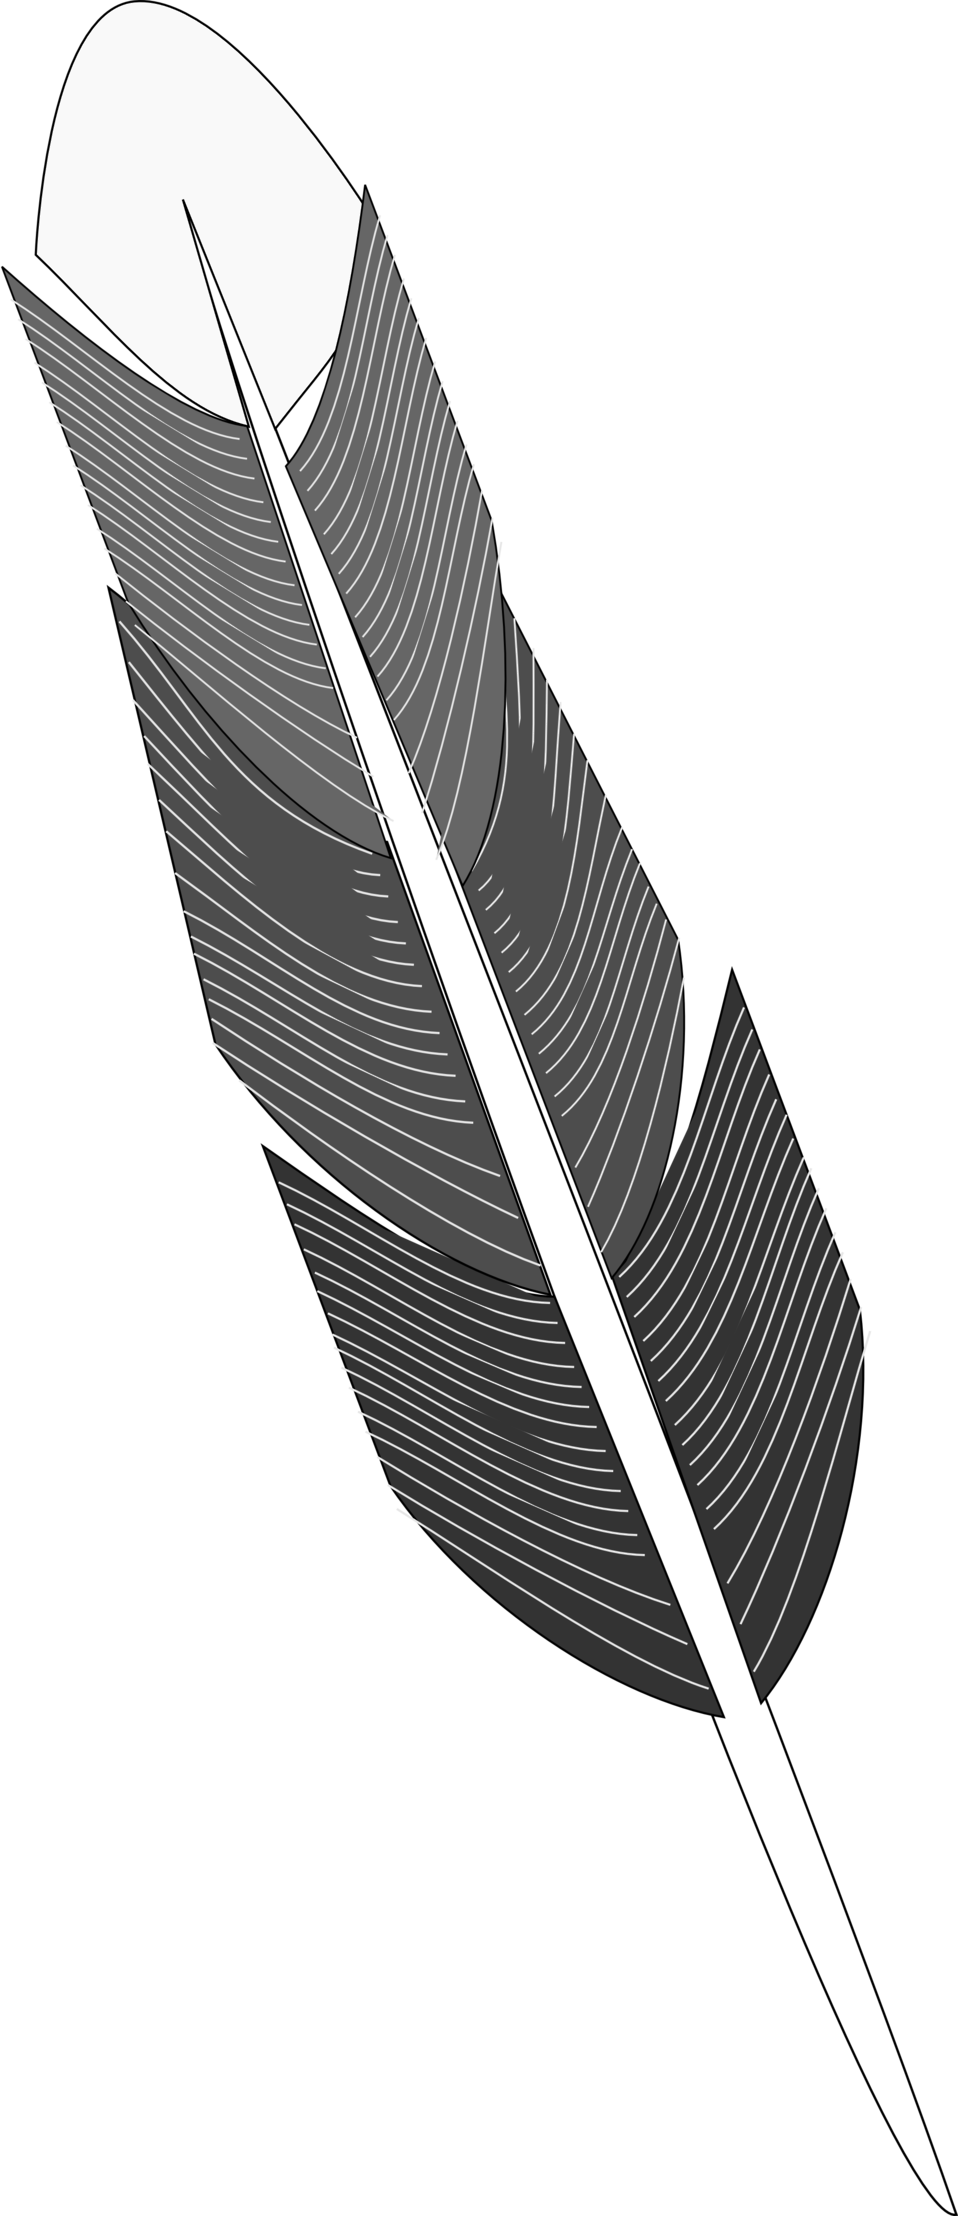 Grayscale Feather